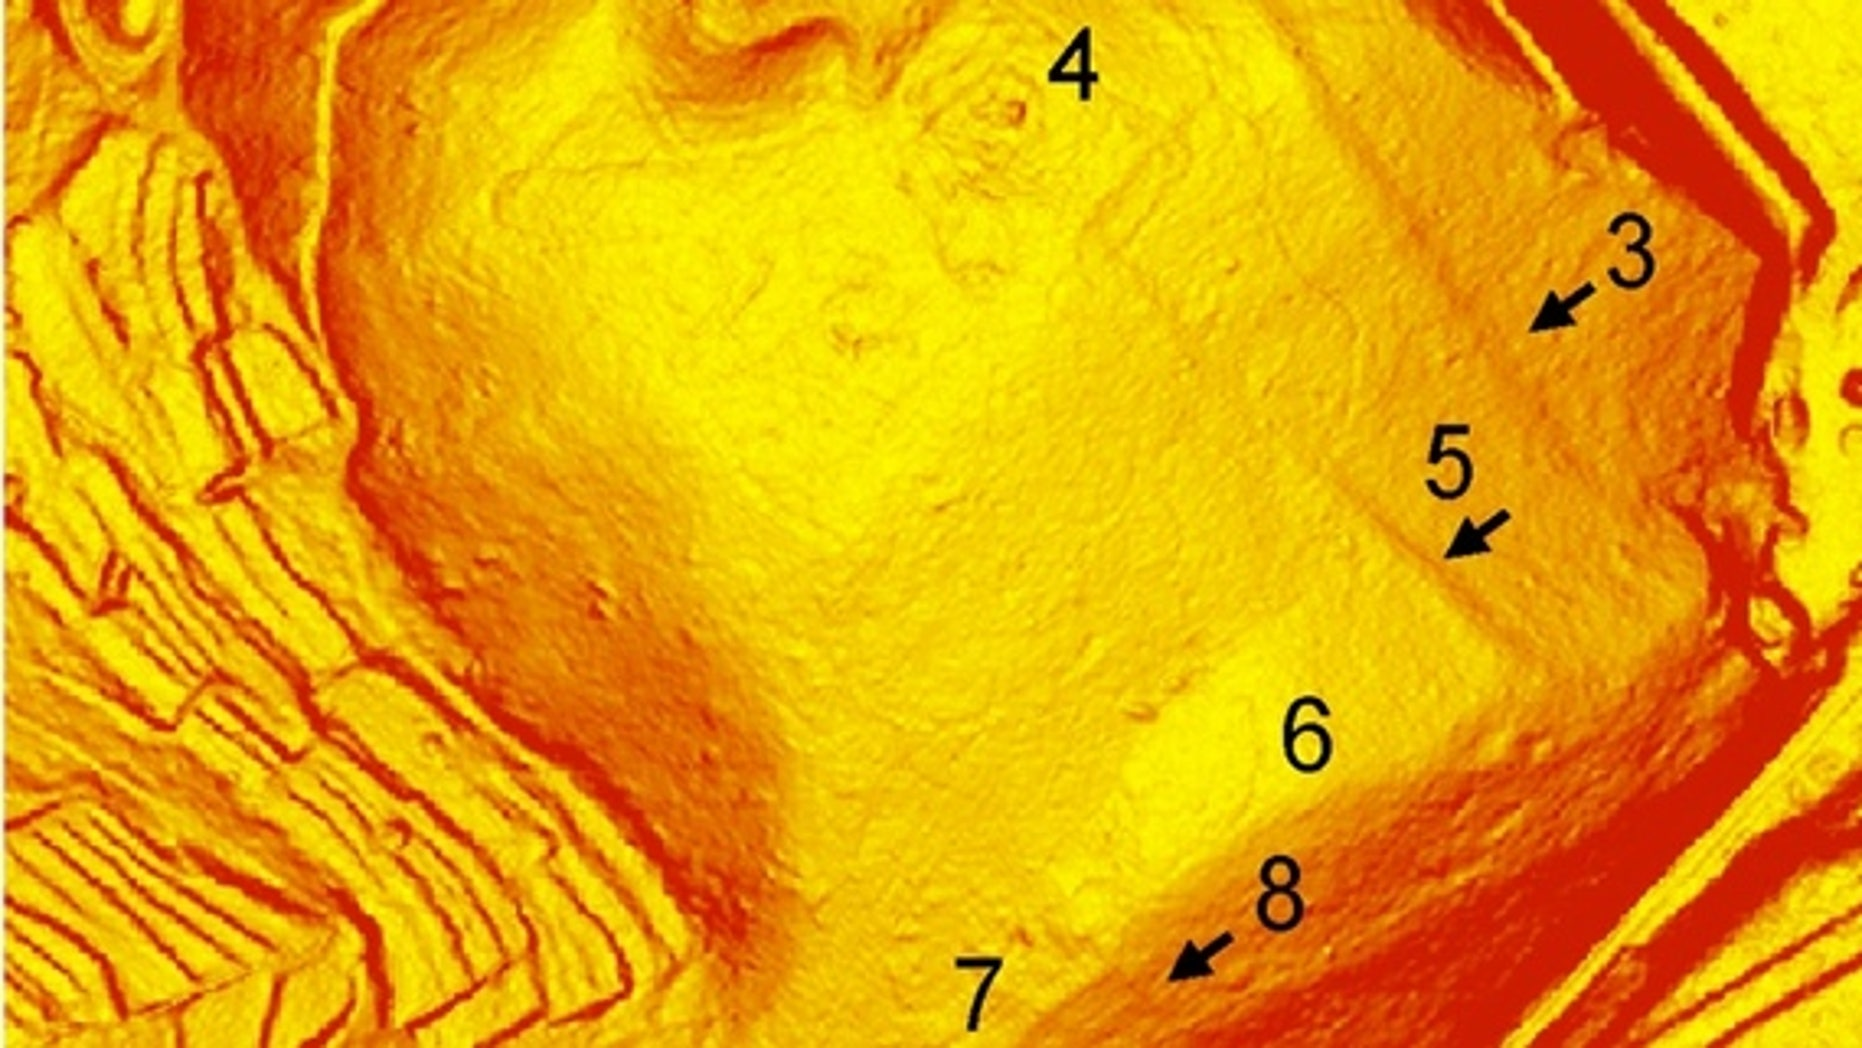 Lidar (the laser equivalent of radar) revealed the oldest known Roman military camp called San Rocco (C). Also shown are the Roman military camps Grociana piccola (A) and Montedoro (B). Scale bars: 100 m.